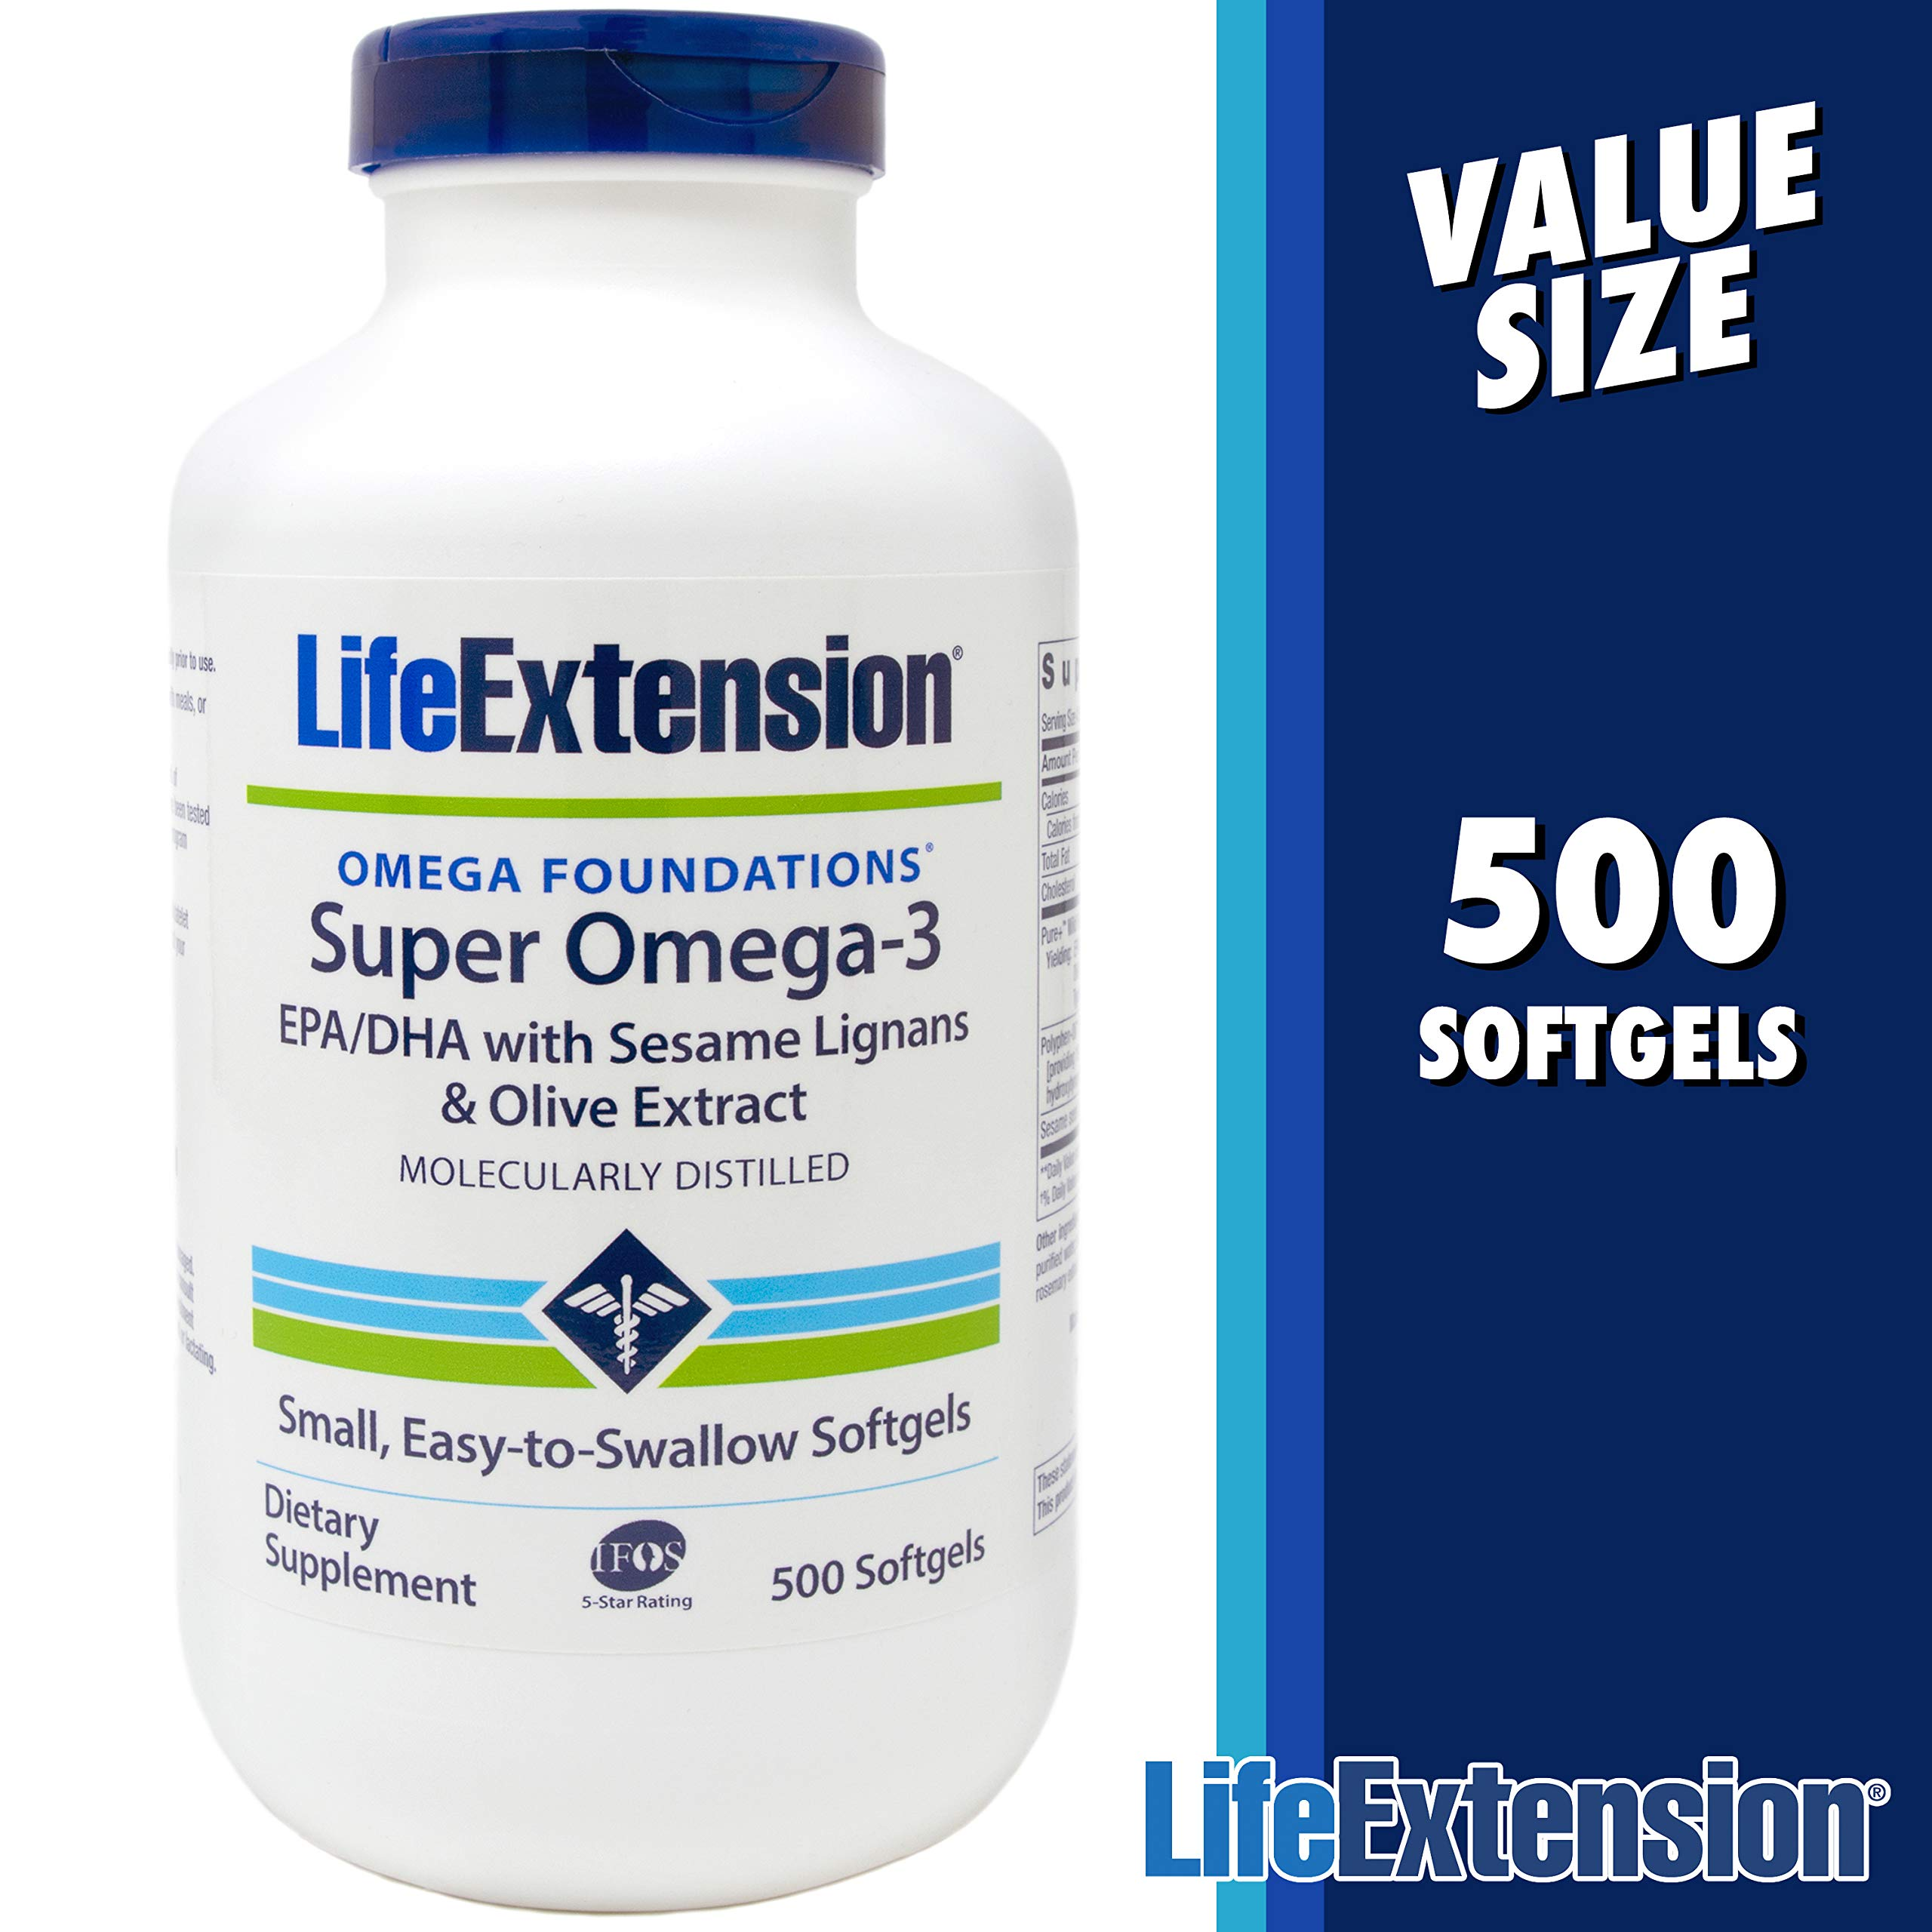 Life Extension Super Omega-3 Fish Oil - 500 Softgels - EPA/DHA with Sesame Lignans and Olive Extract by Life Extension